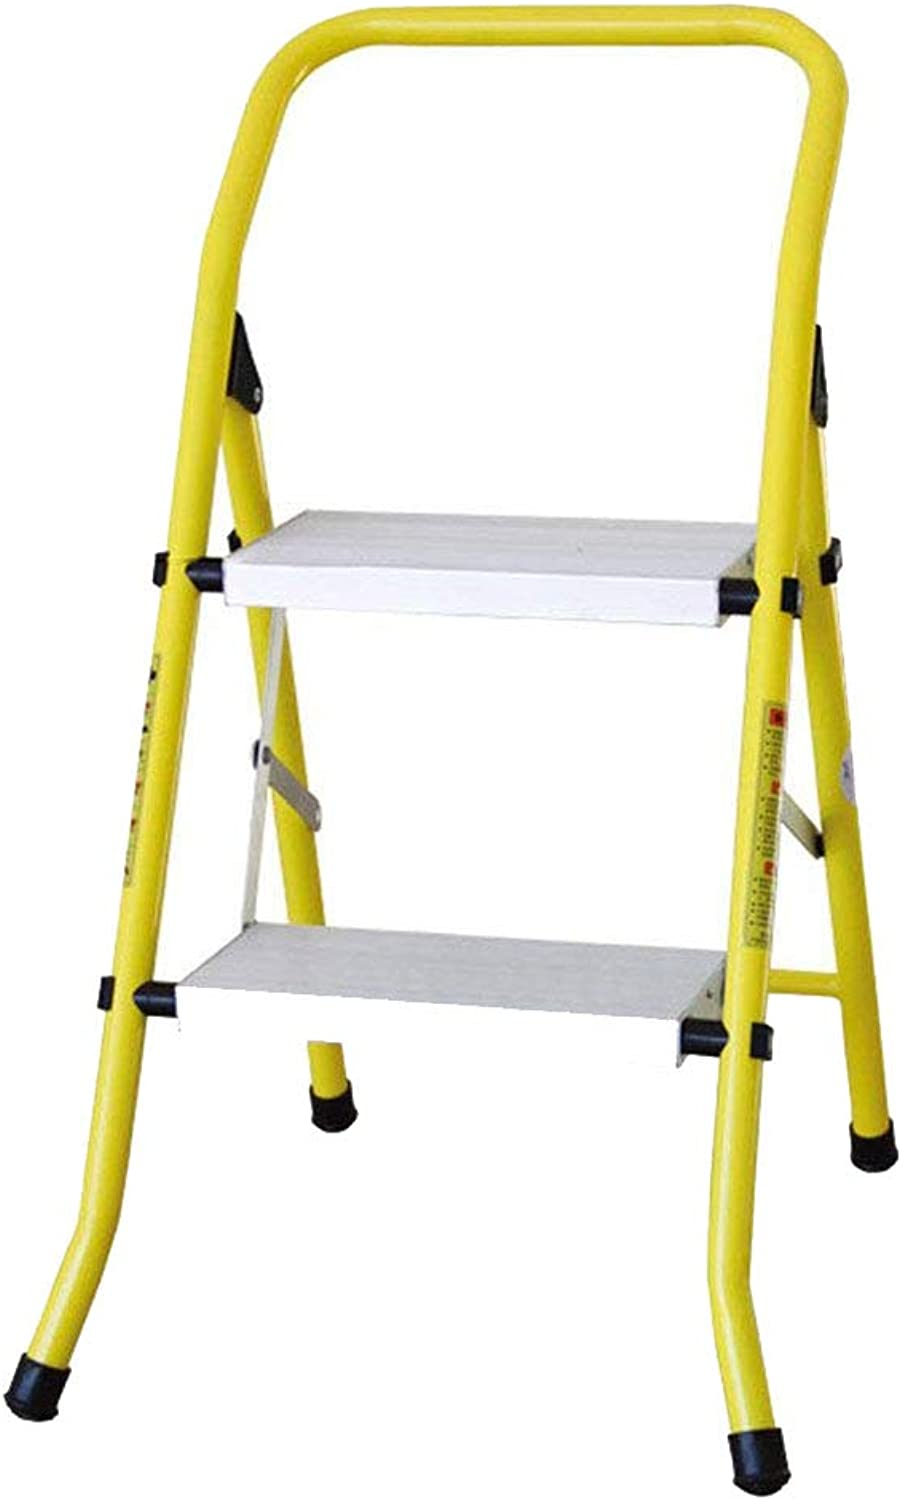 SHELFDQ Ladder Stool Folding Ladder Two Three Steps Nonslip Household Pedals Herringbone Dual Use Indoor Multifunction (Size   2 step)